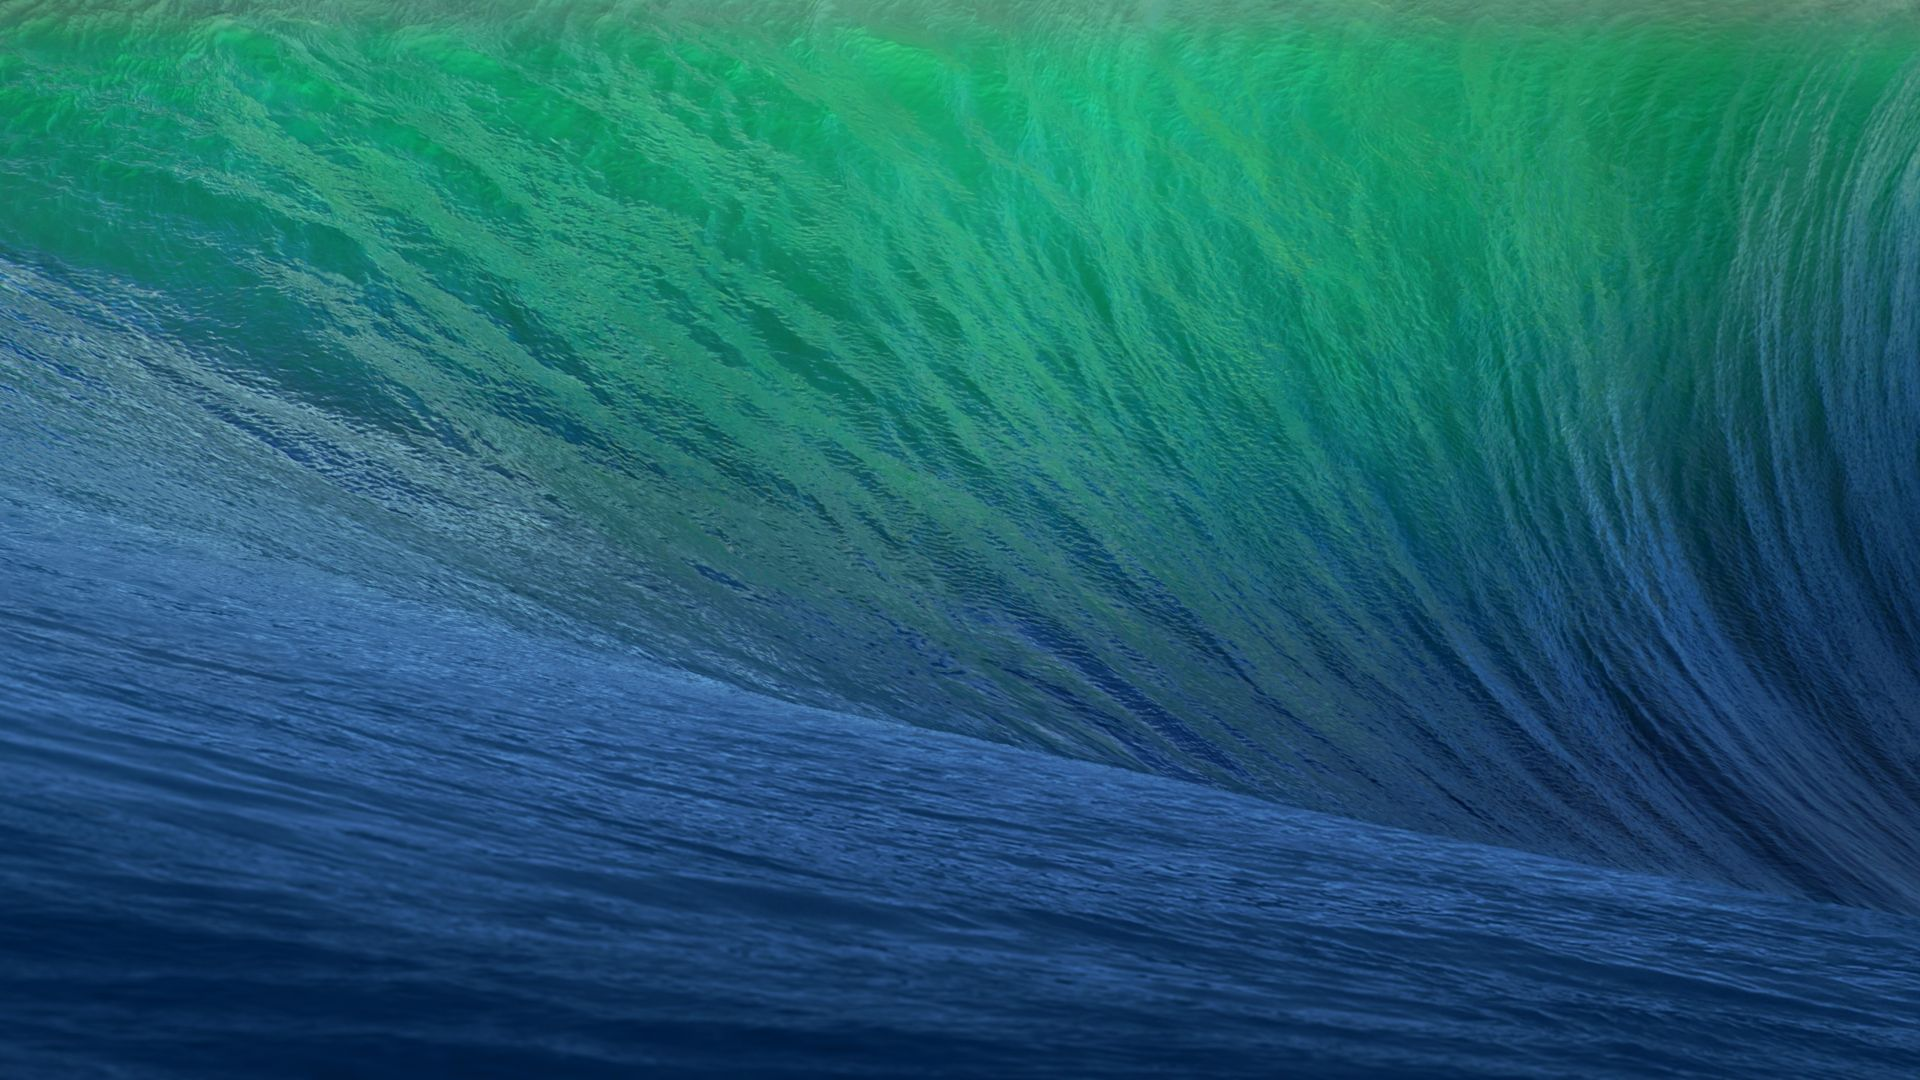 Apple, iOS 10, live wallpaper, live photo, wave, macOS Sierra